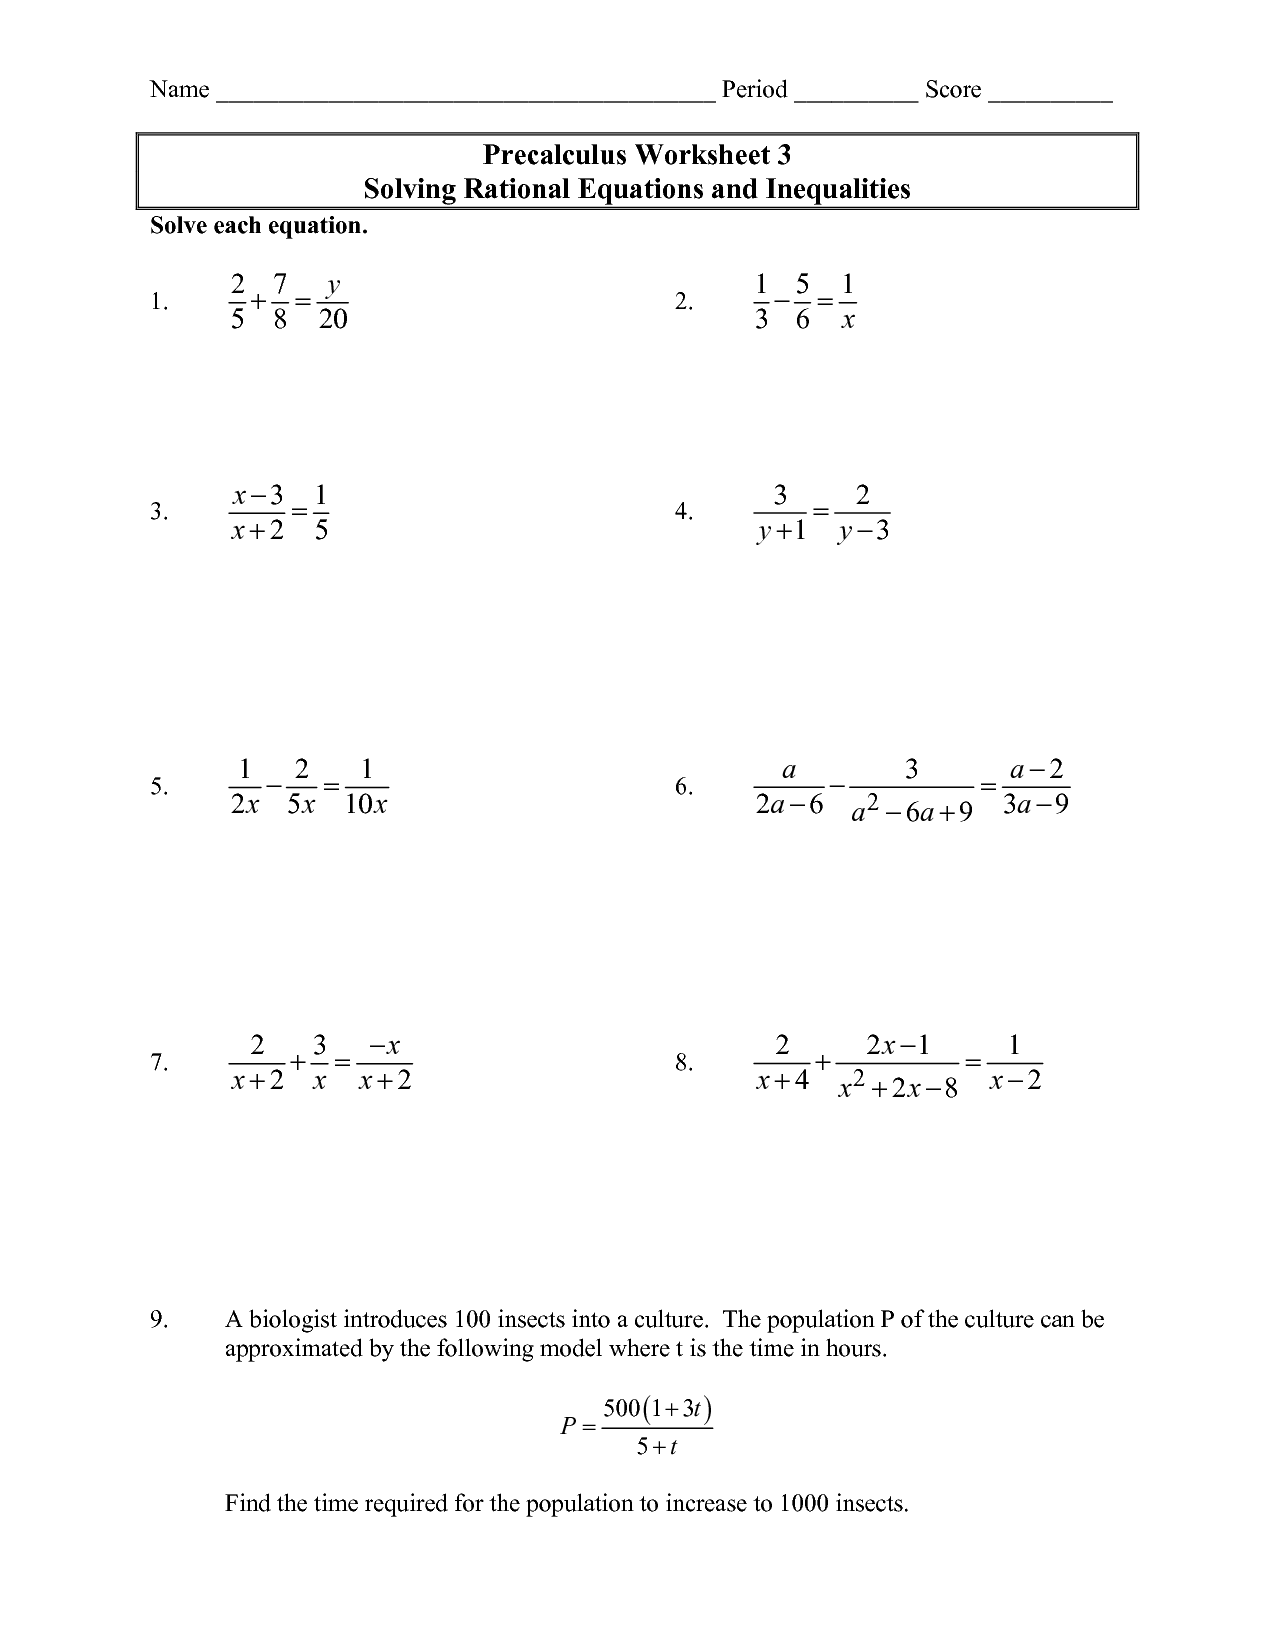 Precalculus Worksheet - Solving Rational Equations and Inequalities